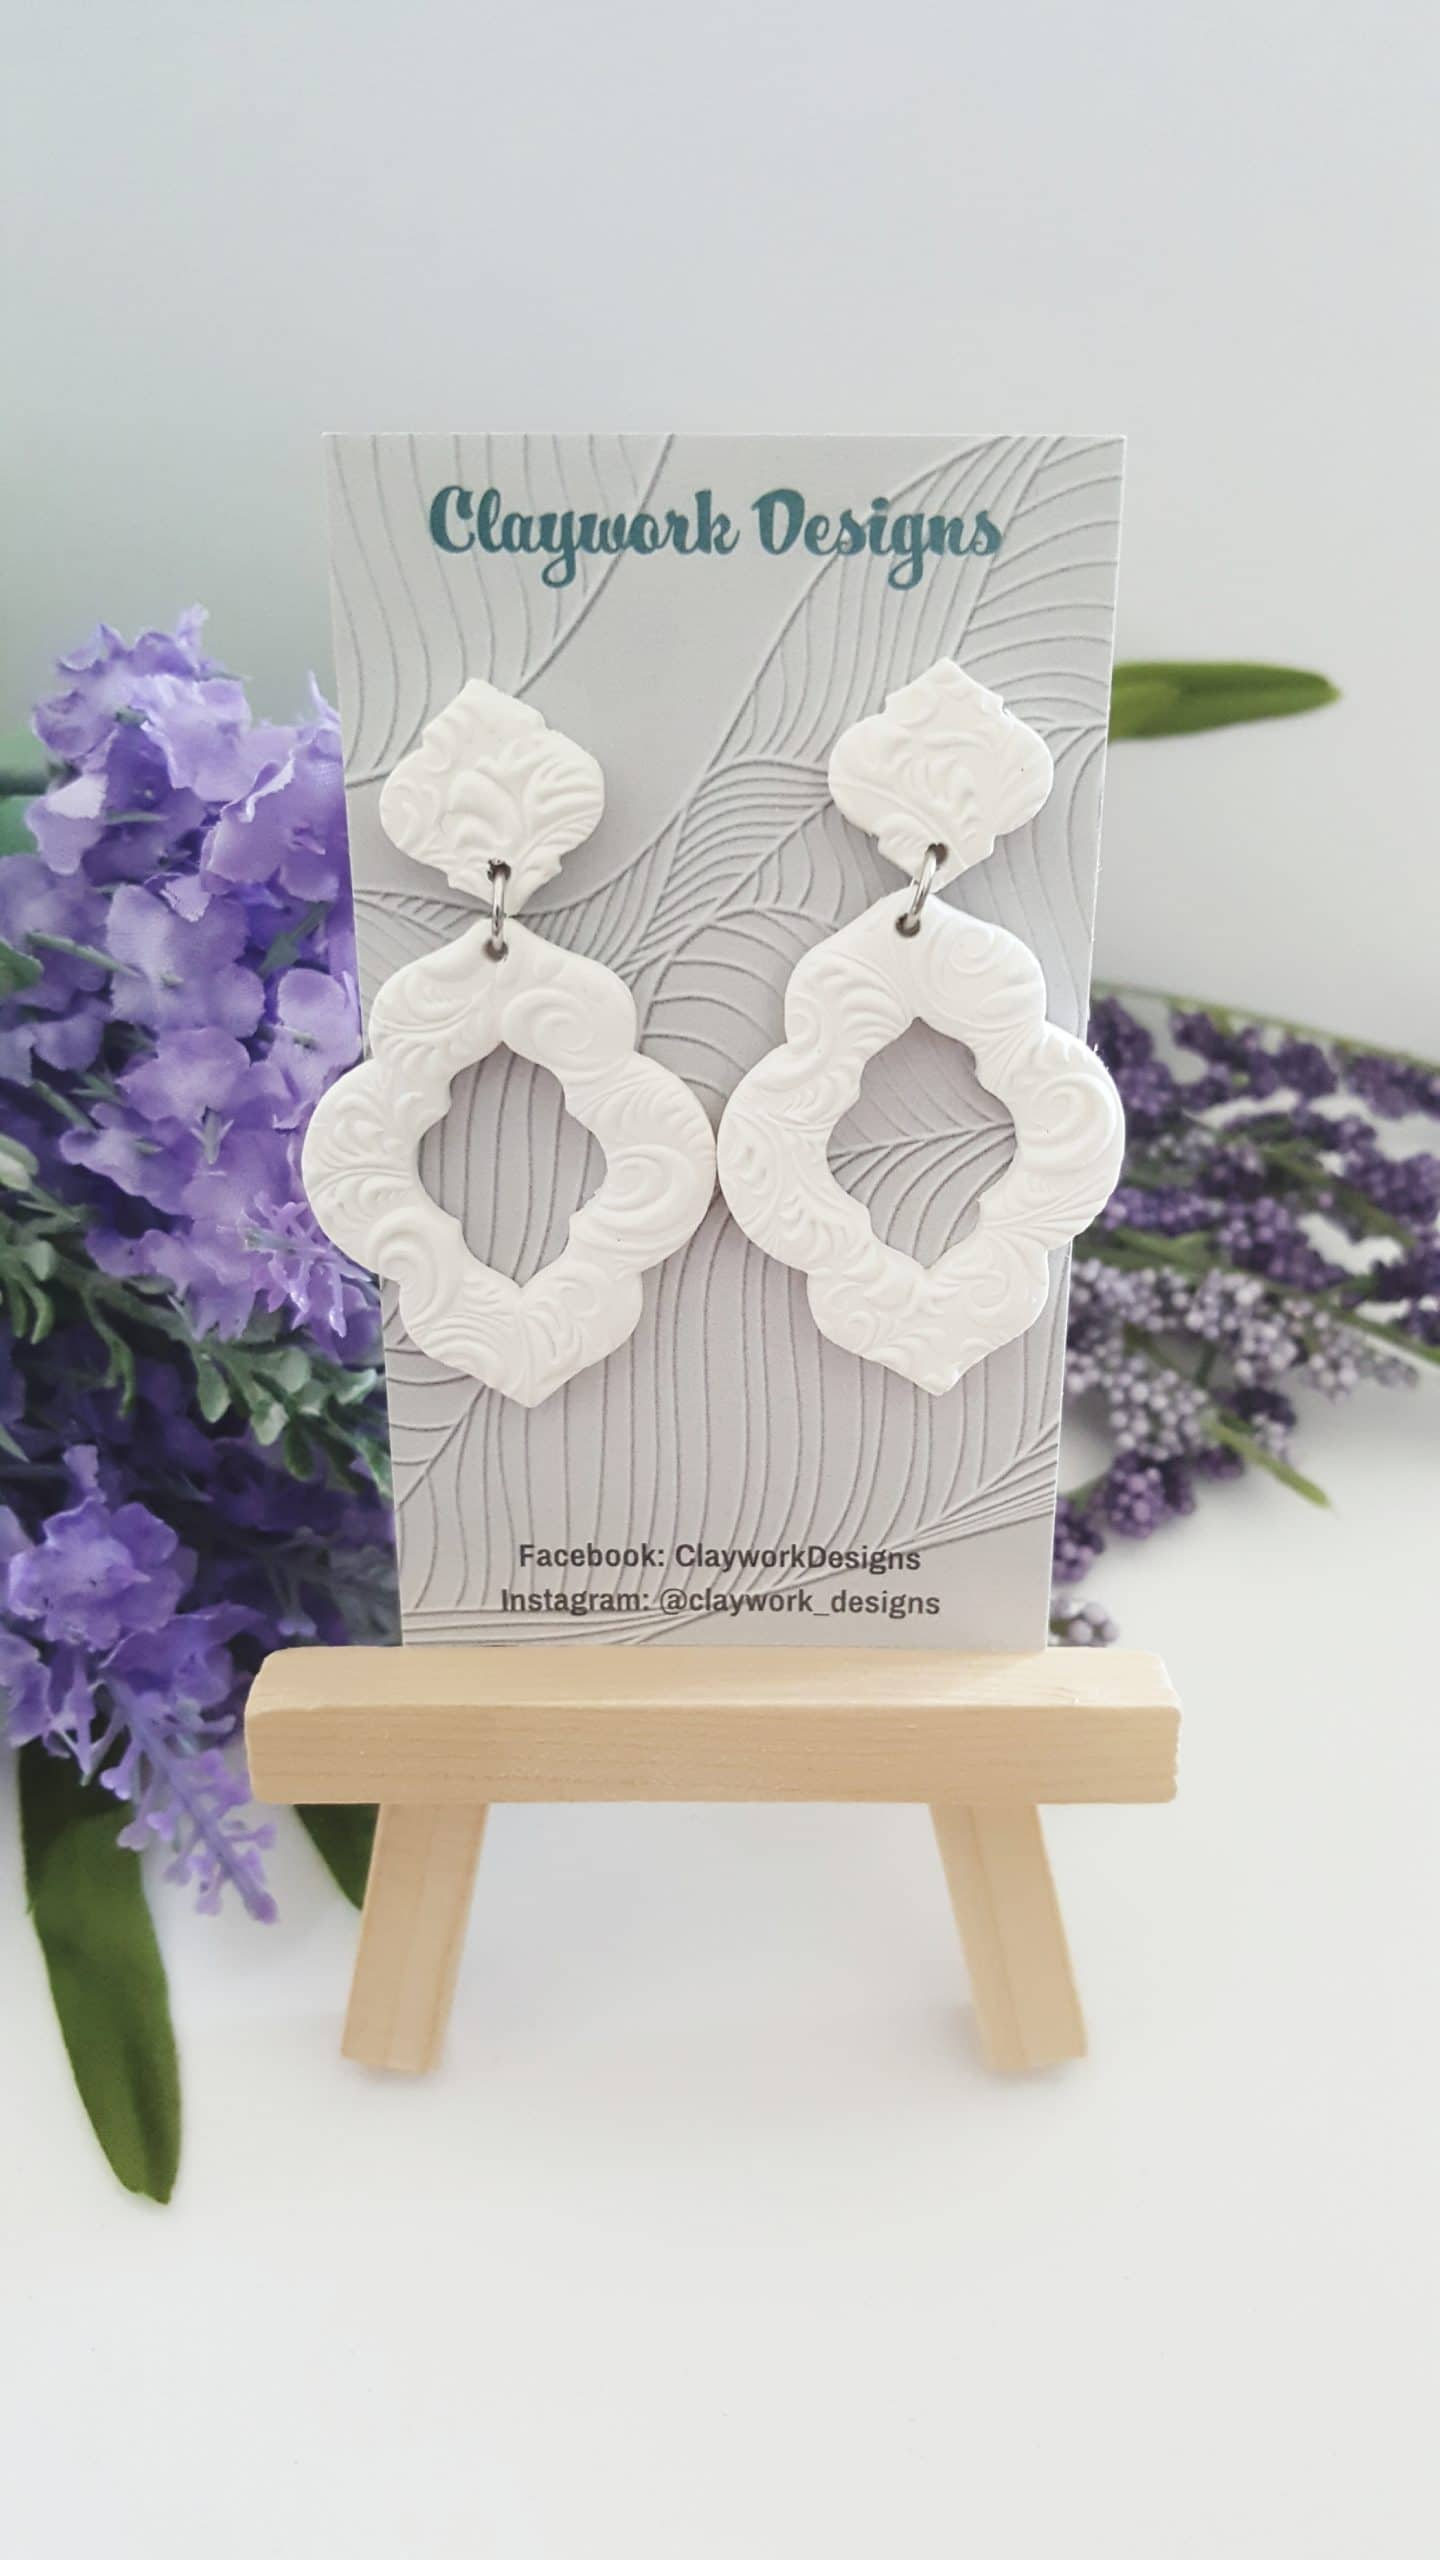 Wirework Designs | Handcrafted chainmaille jewellery and chainmaille products | Clay Style Statement Earrings | 20210515_153500